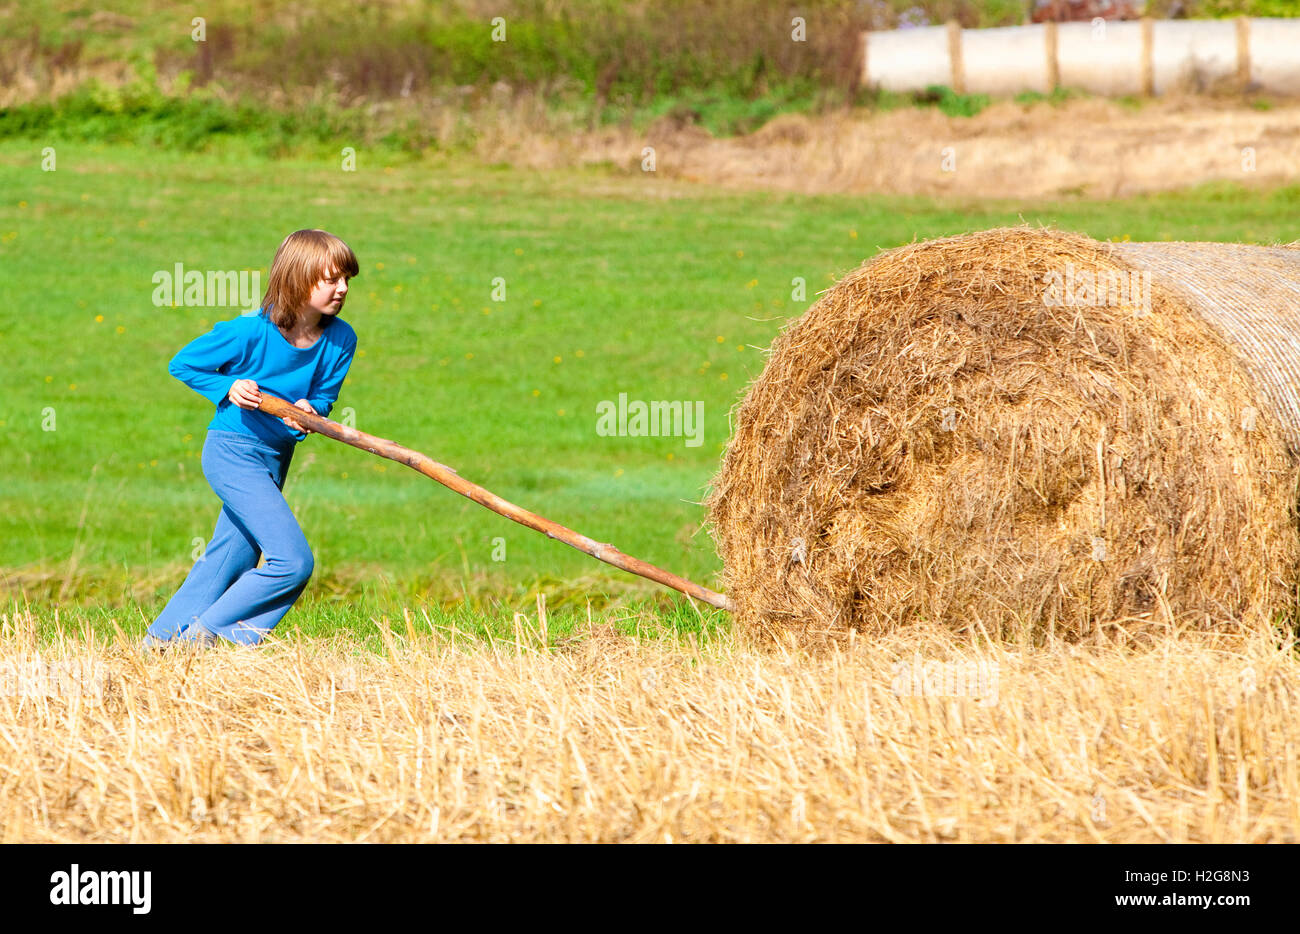 Boy Moving Bale of Hay with Stick as a Lever - Stock Image